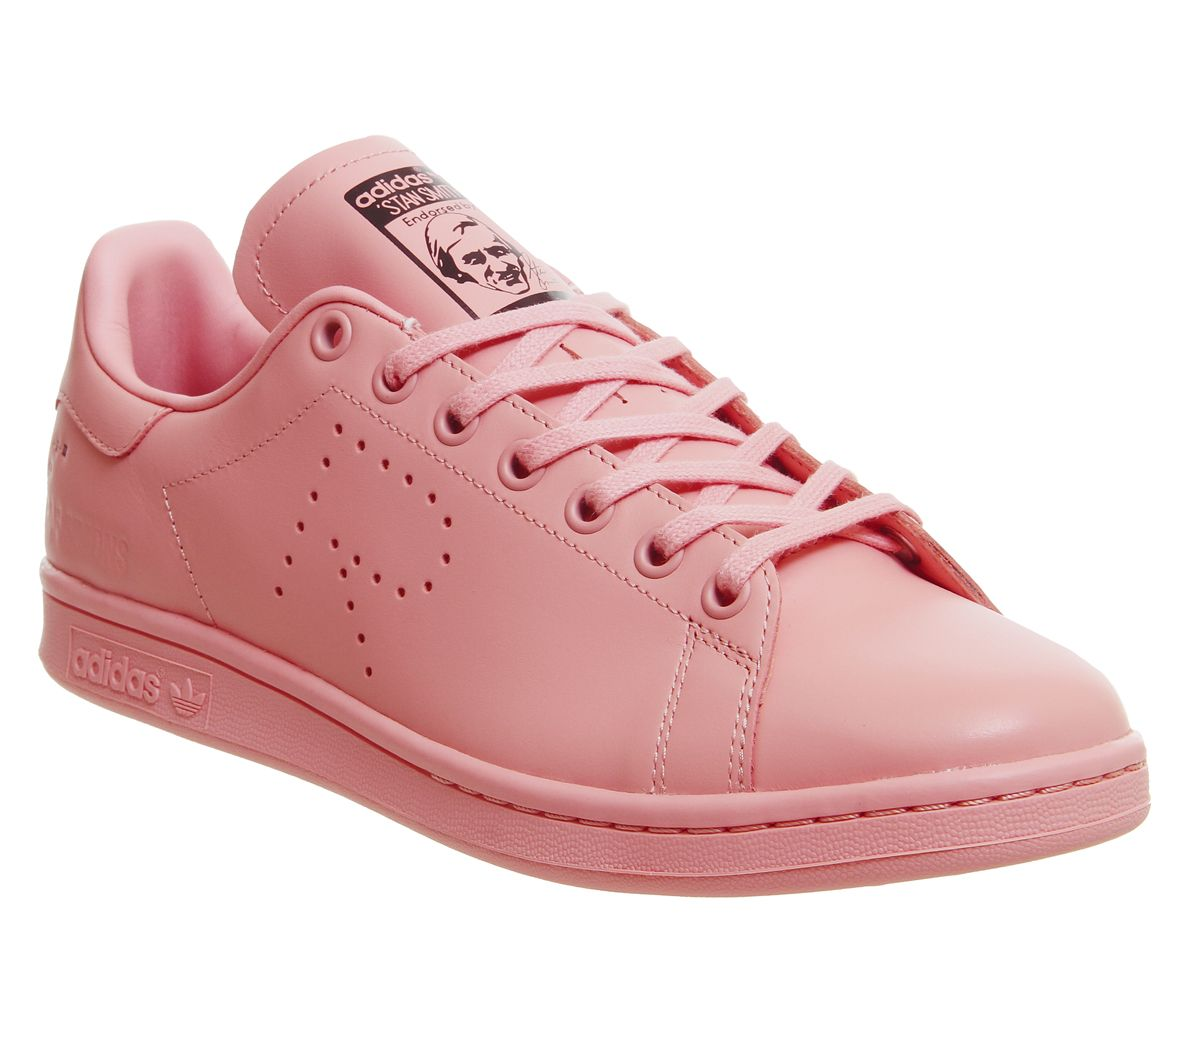 reputable site 03ed6 470f6 Raf X Stan Smith Trainers